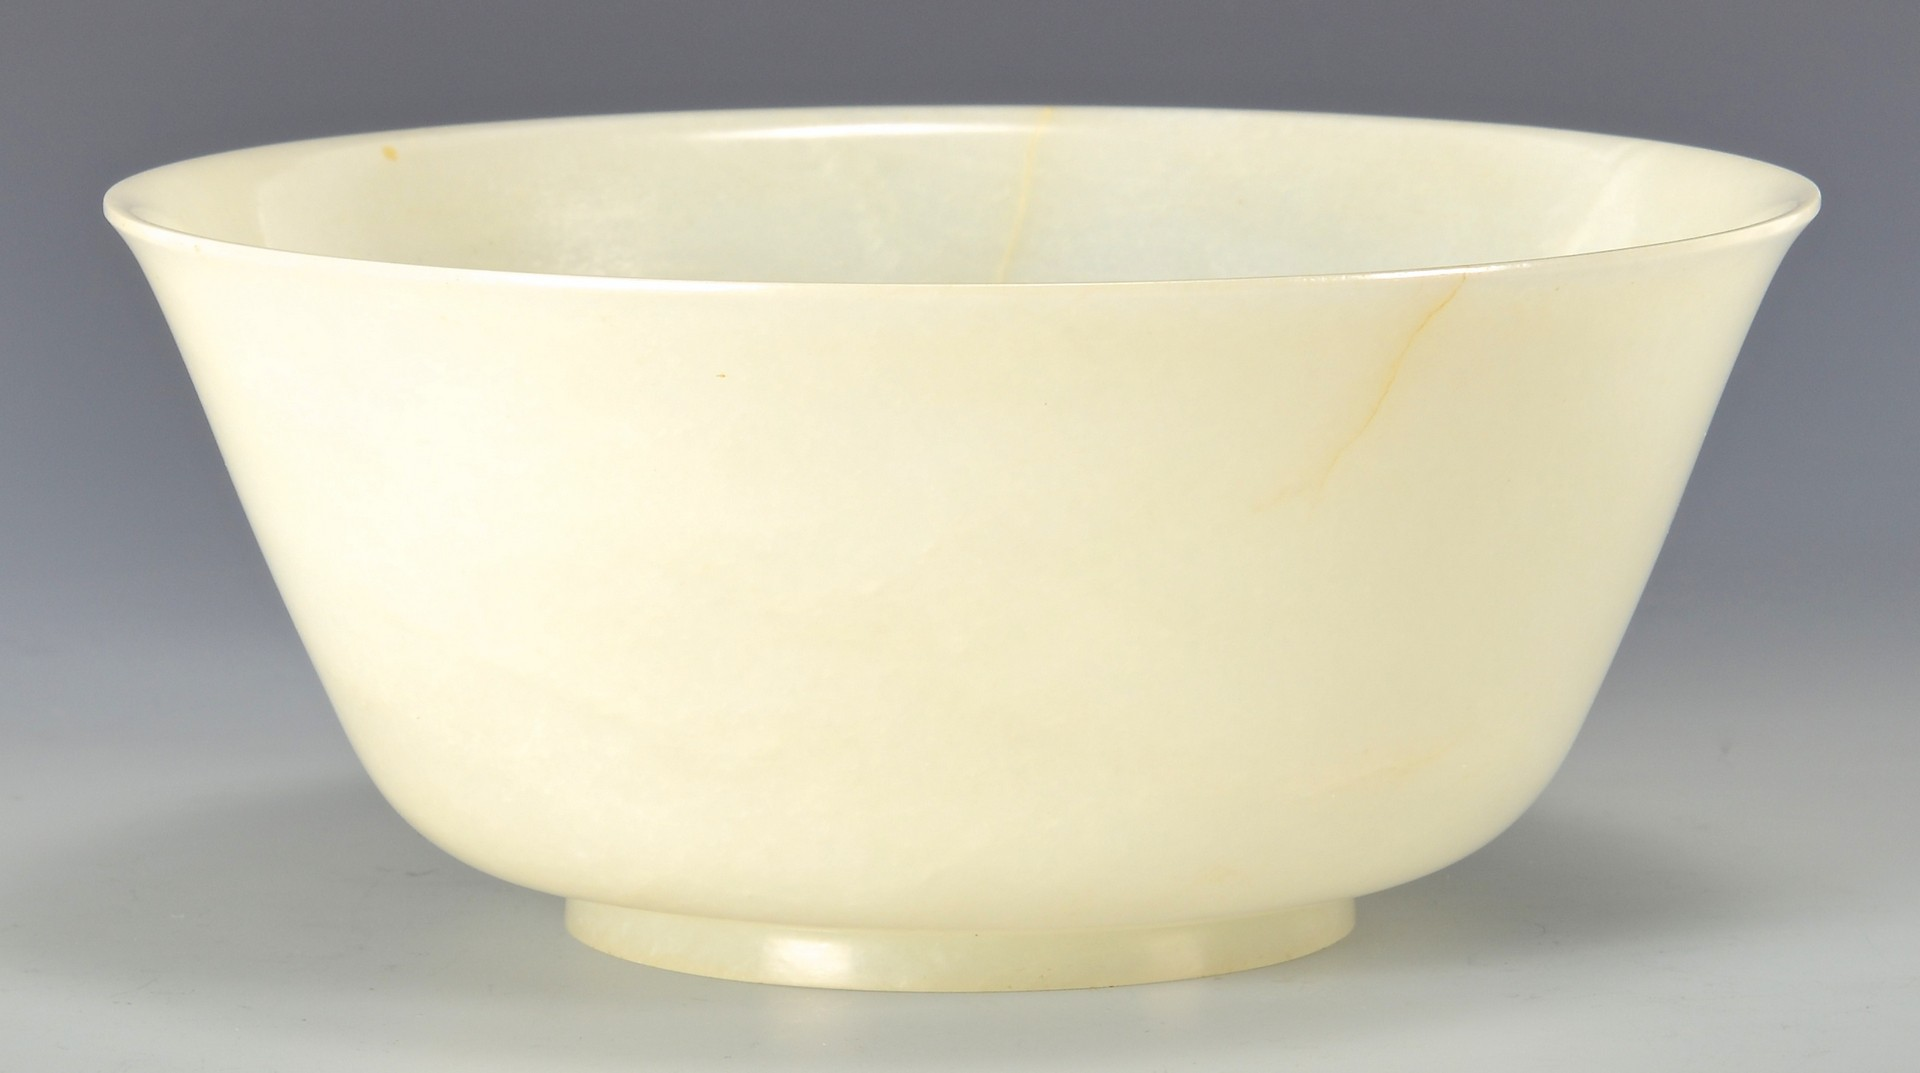 Lot 4: White Jade Bowl, Ch'ien Lung